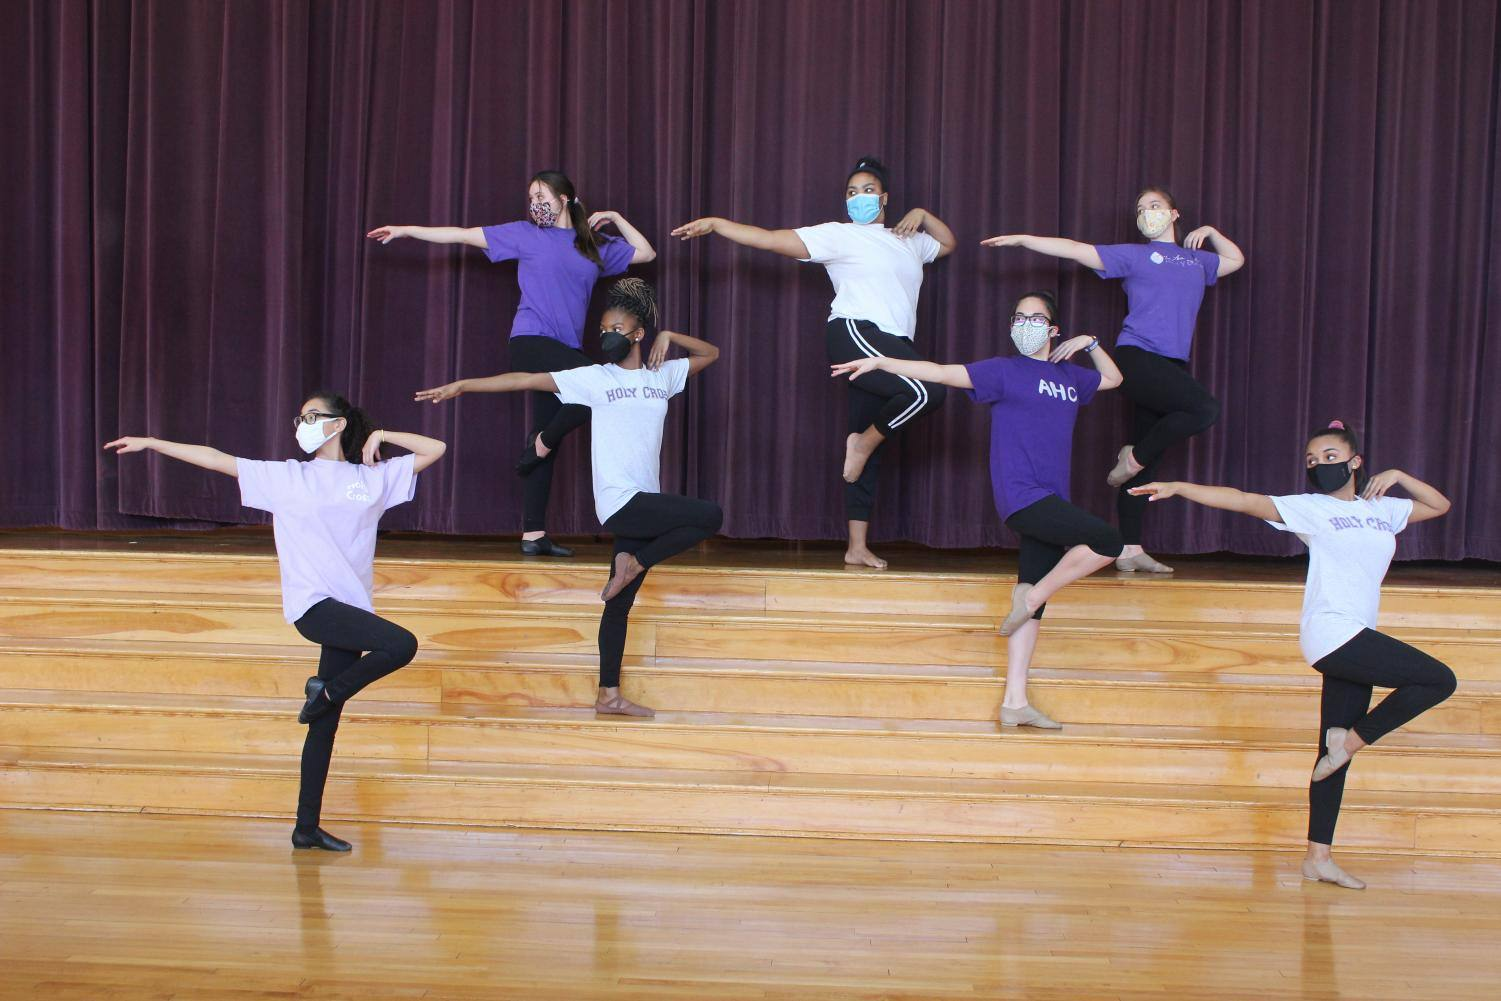 Adrenaline dance team together for their first in-person rehersal.